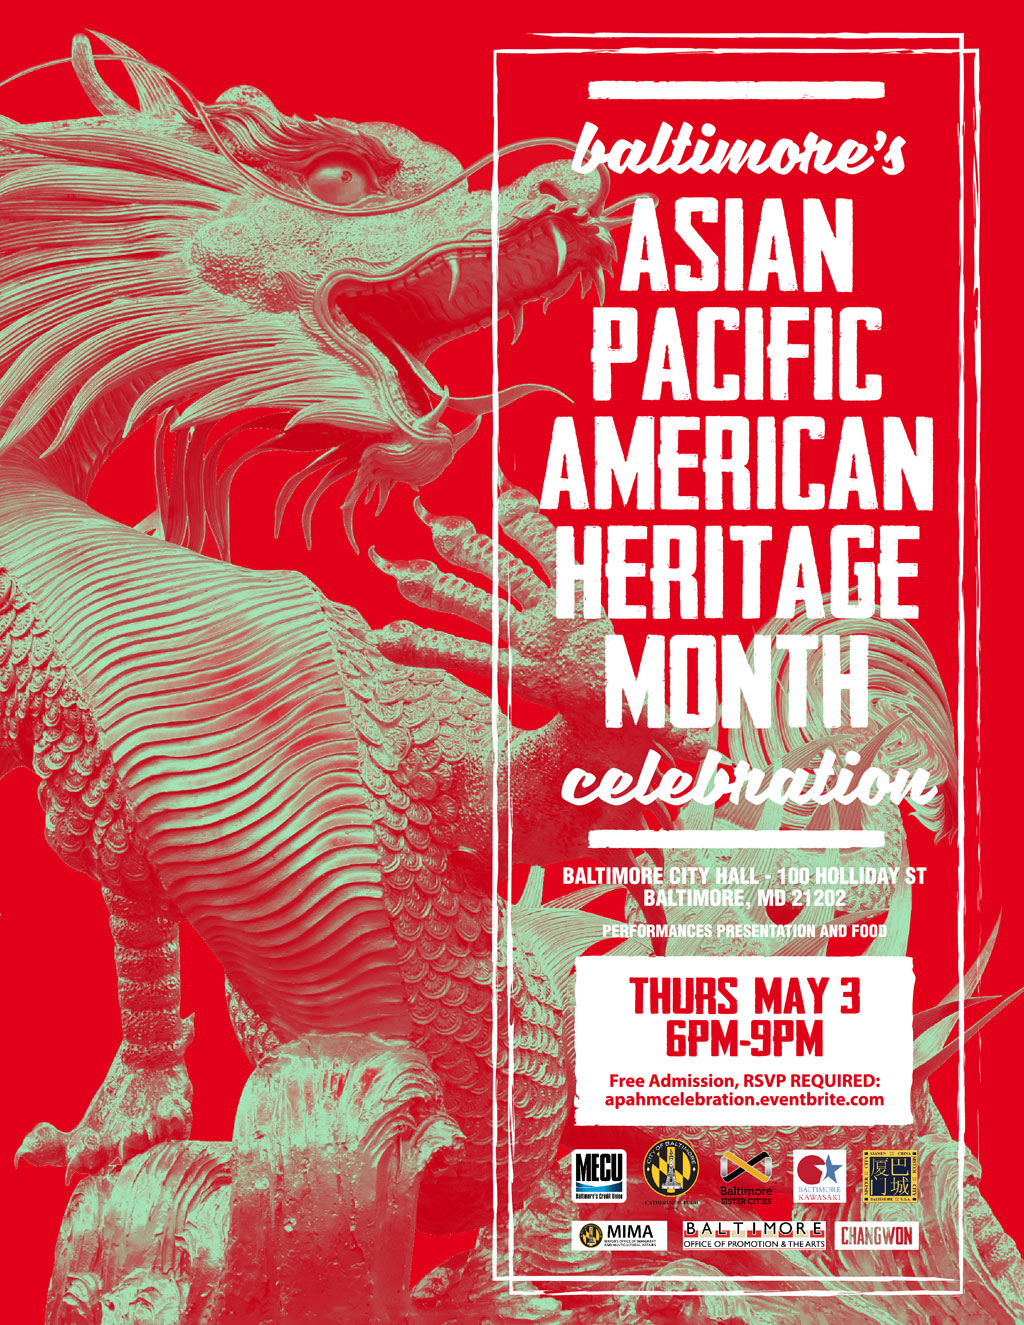 Baltimore's 2018 Asian Pacific American Heritage Month celebration